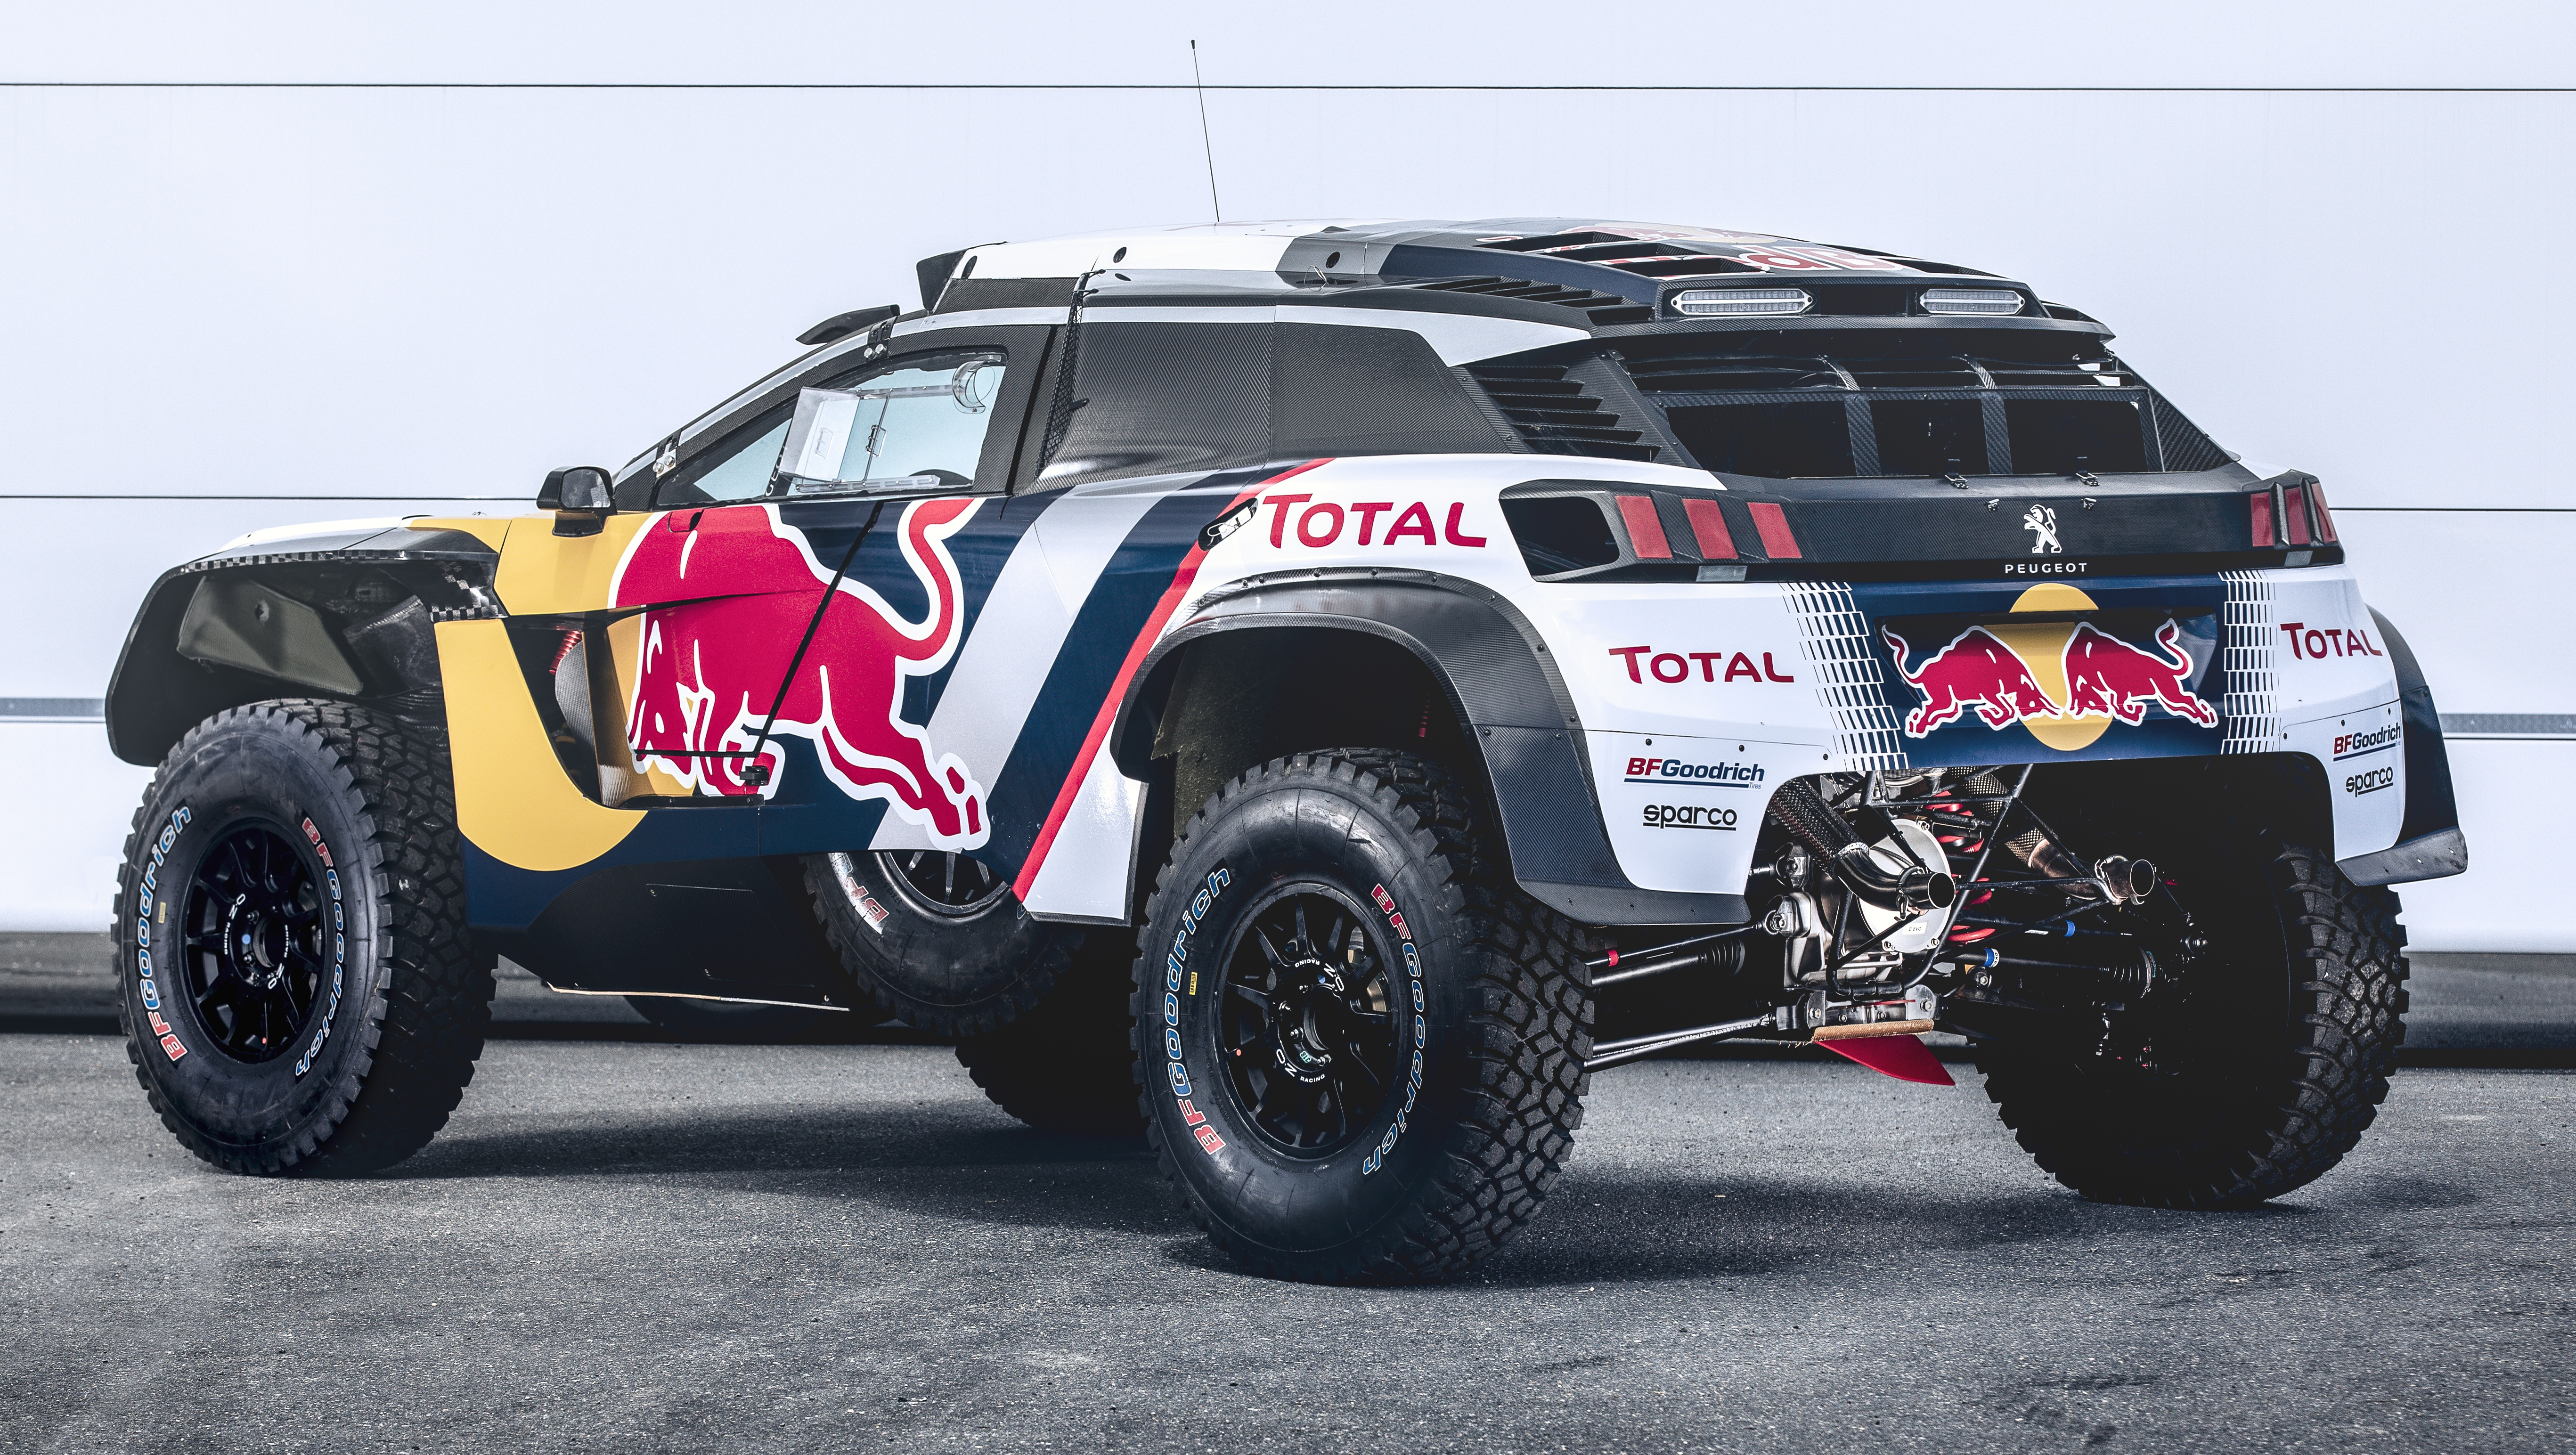 peugeot 3008 dkr maxi unveiled with wider track paul tan image 677645. Black Bedroom Furniture Sets. Home Design Ideas